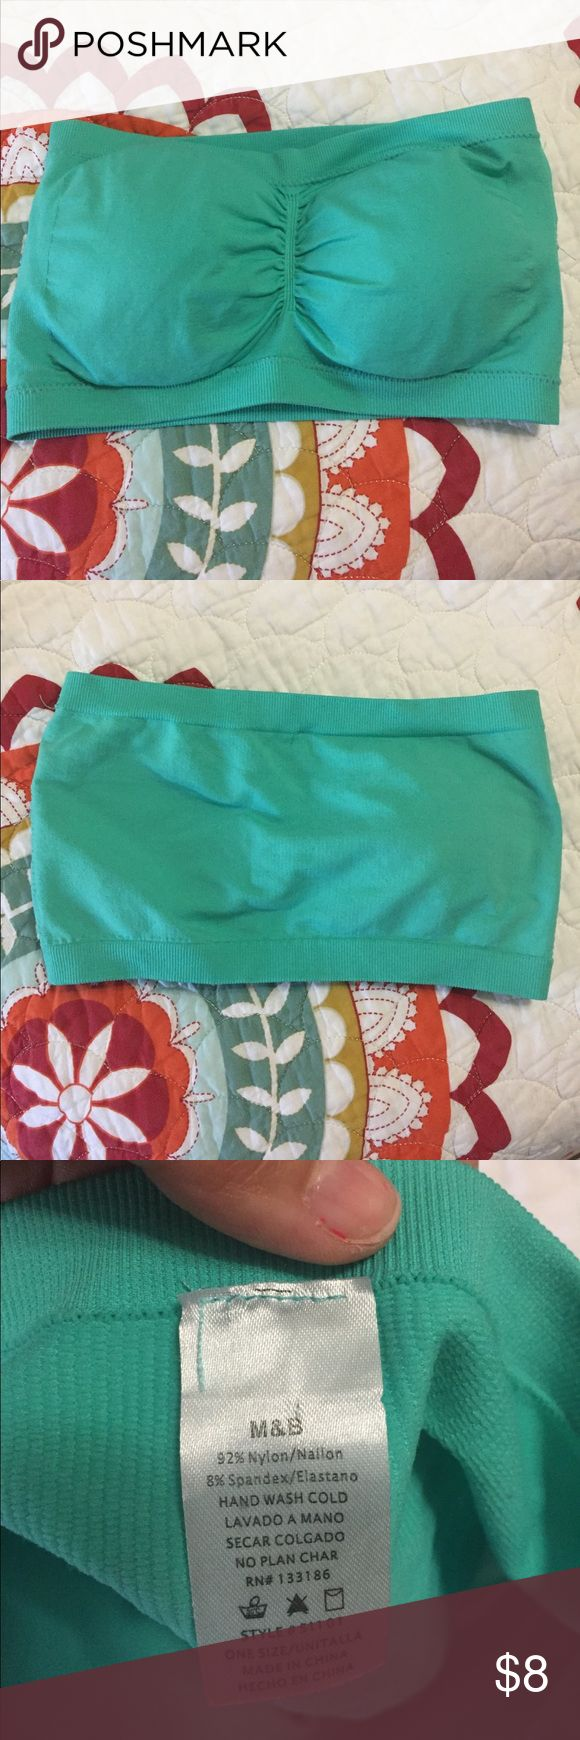 Bandeau Top padded elastic green one size Beautiful green color, this one size Bandeau Top is padded for no show through. Wear it with your favorite cami, dress or sheer top! One Size. Never used! Brand new just no tag! M&B Intimates & Sleepwear Bandeaus